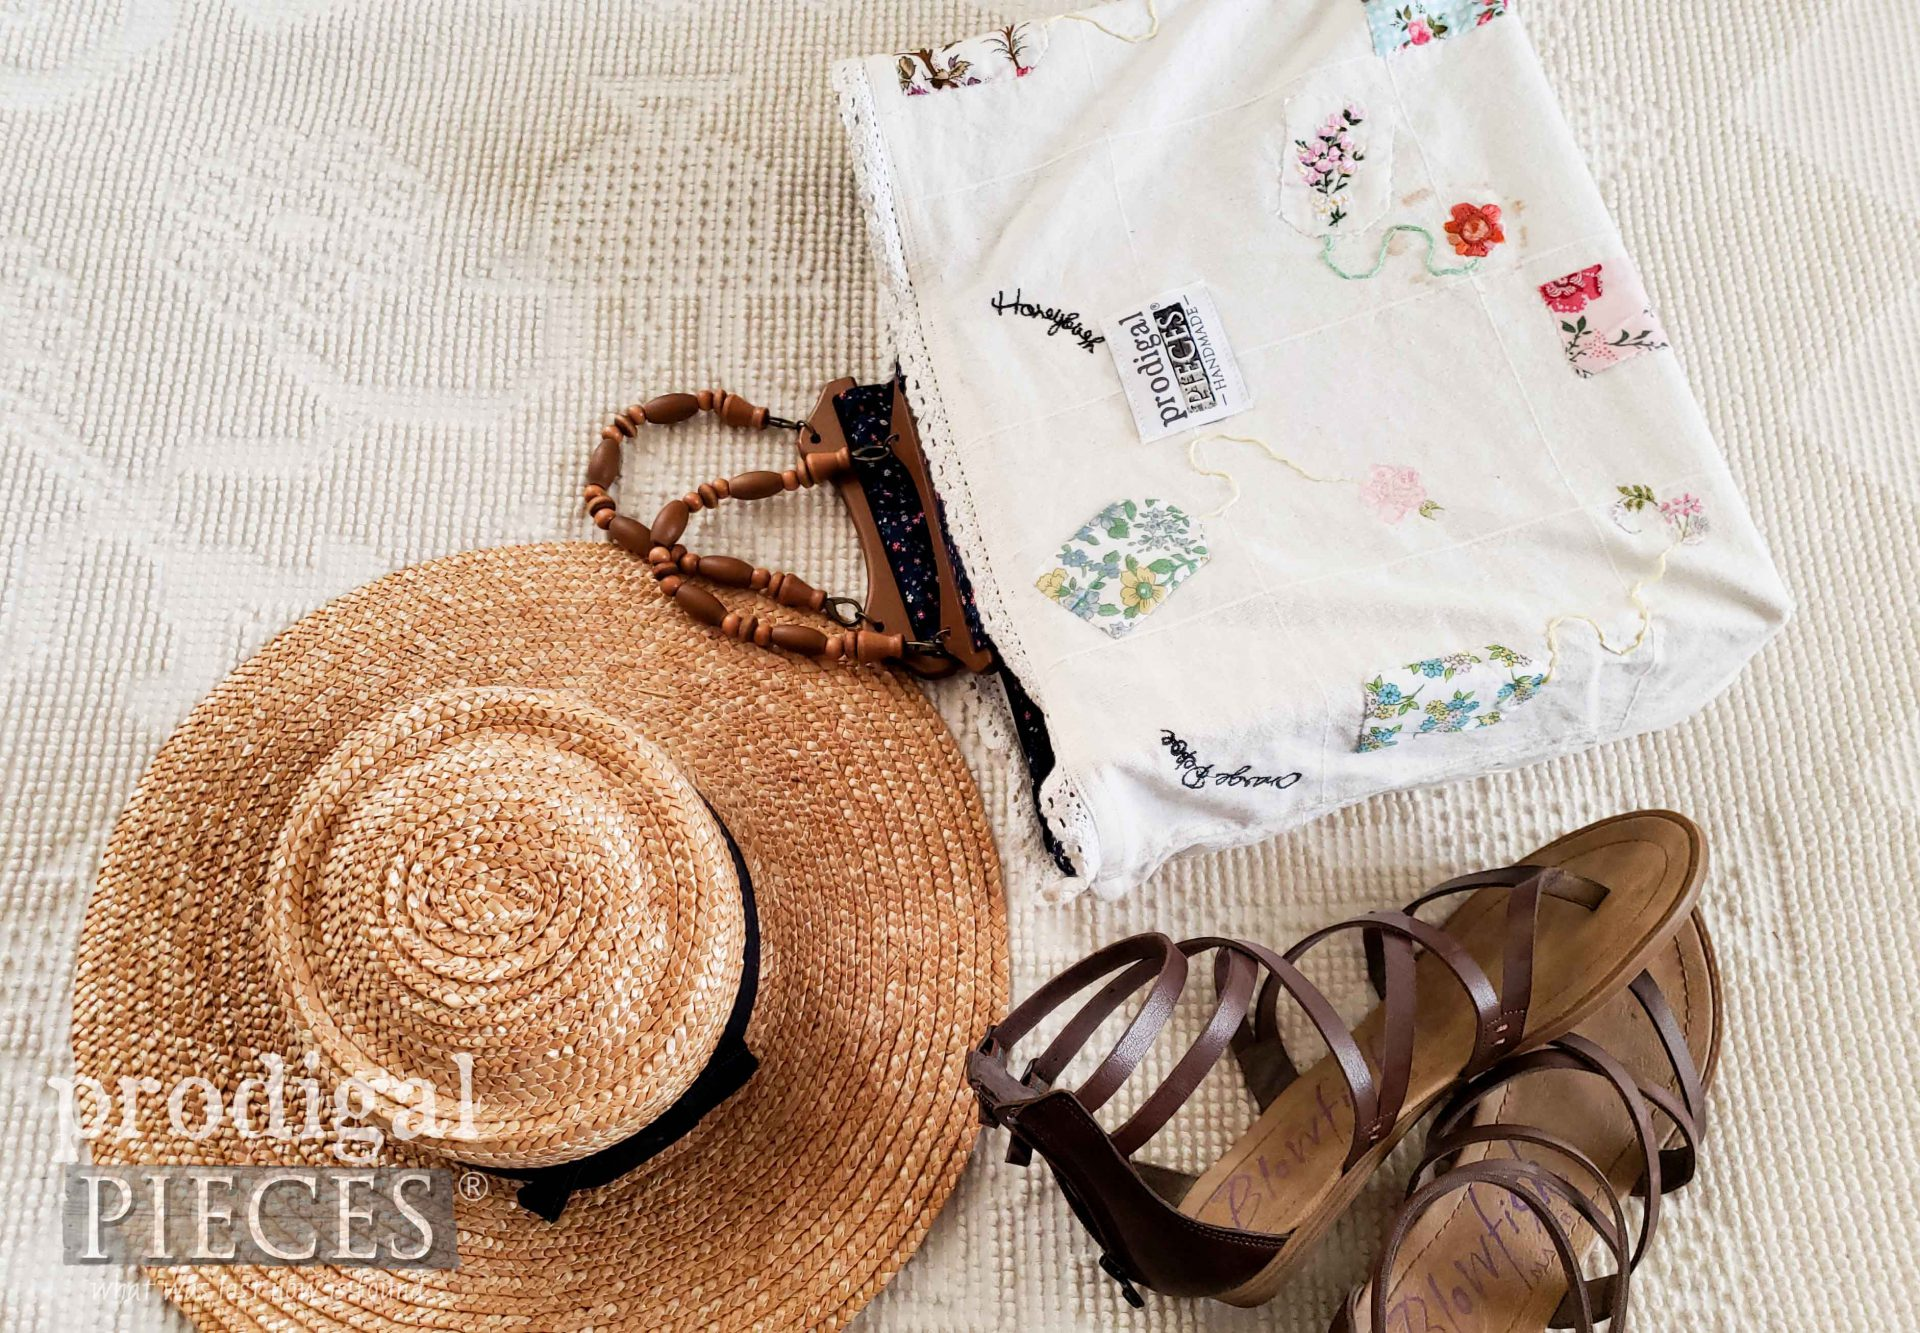 Farmhouse Cottage Style Bag by Larissa of Prodigal Pieces | prodigalpieces.com #prodigalpieces #refashion #diy #handmade